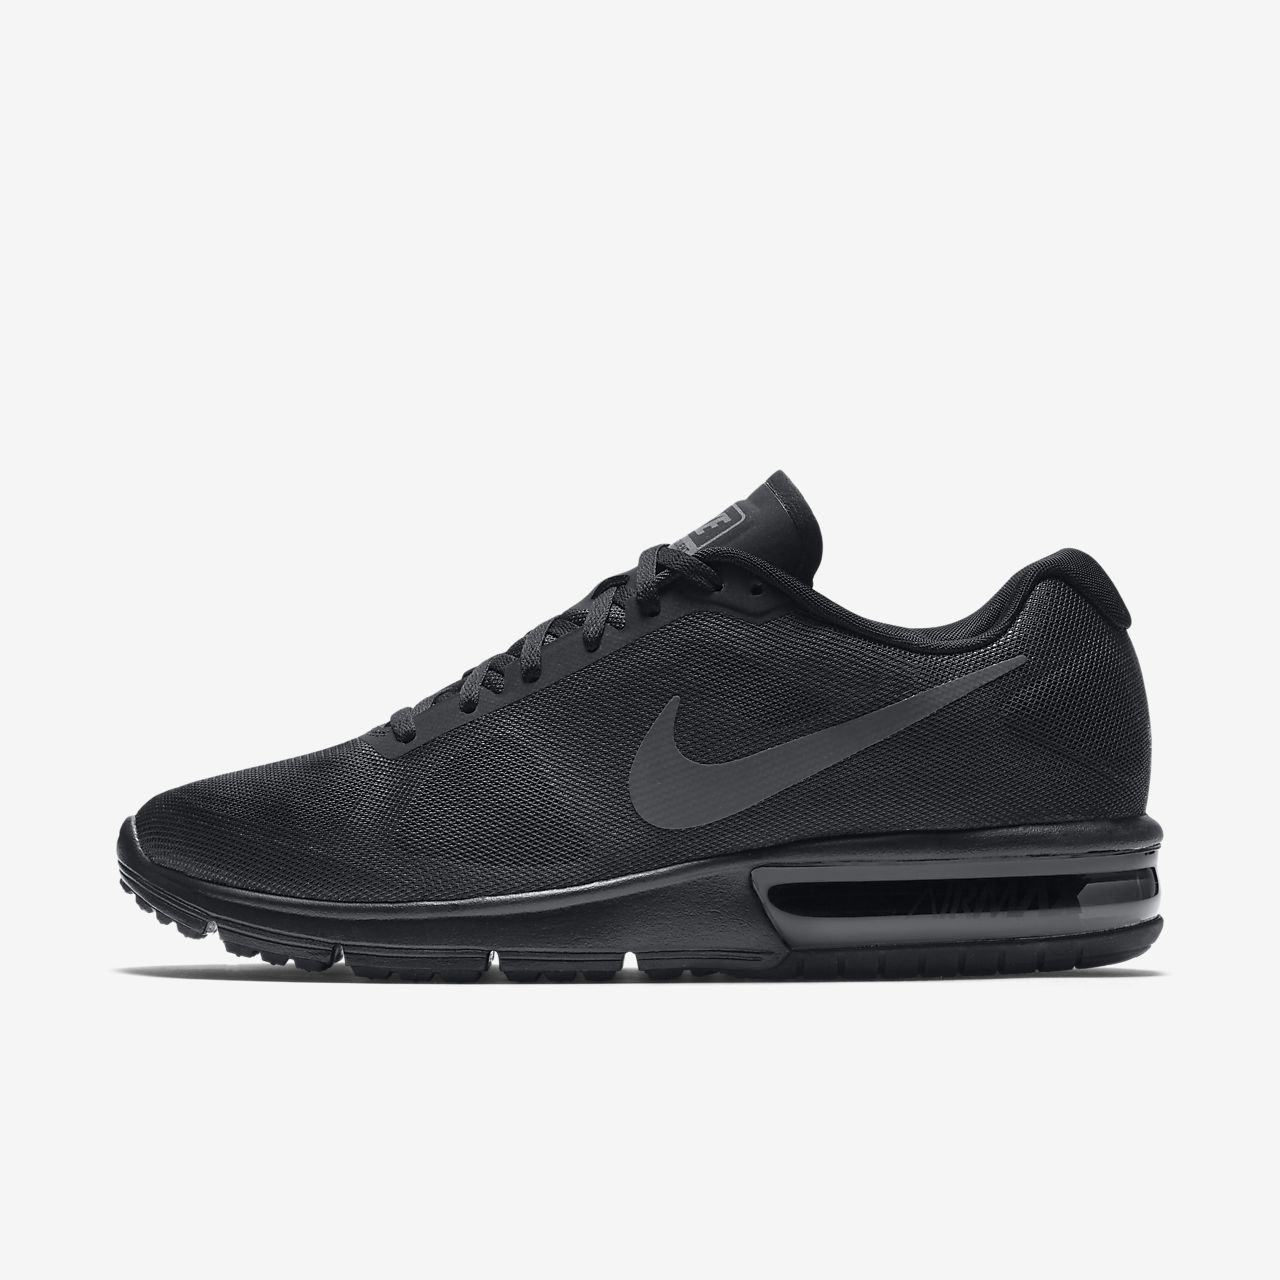 half off 7a309 94f53 air-max-sequent-herren-laufschuh-q35HF1.jpg